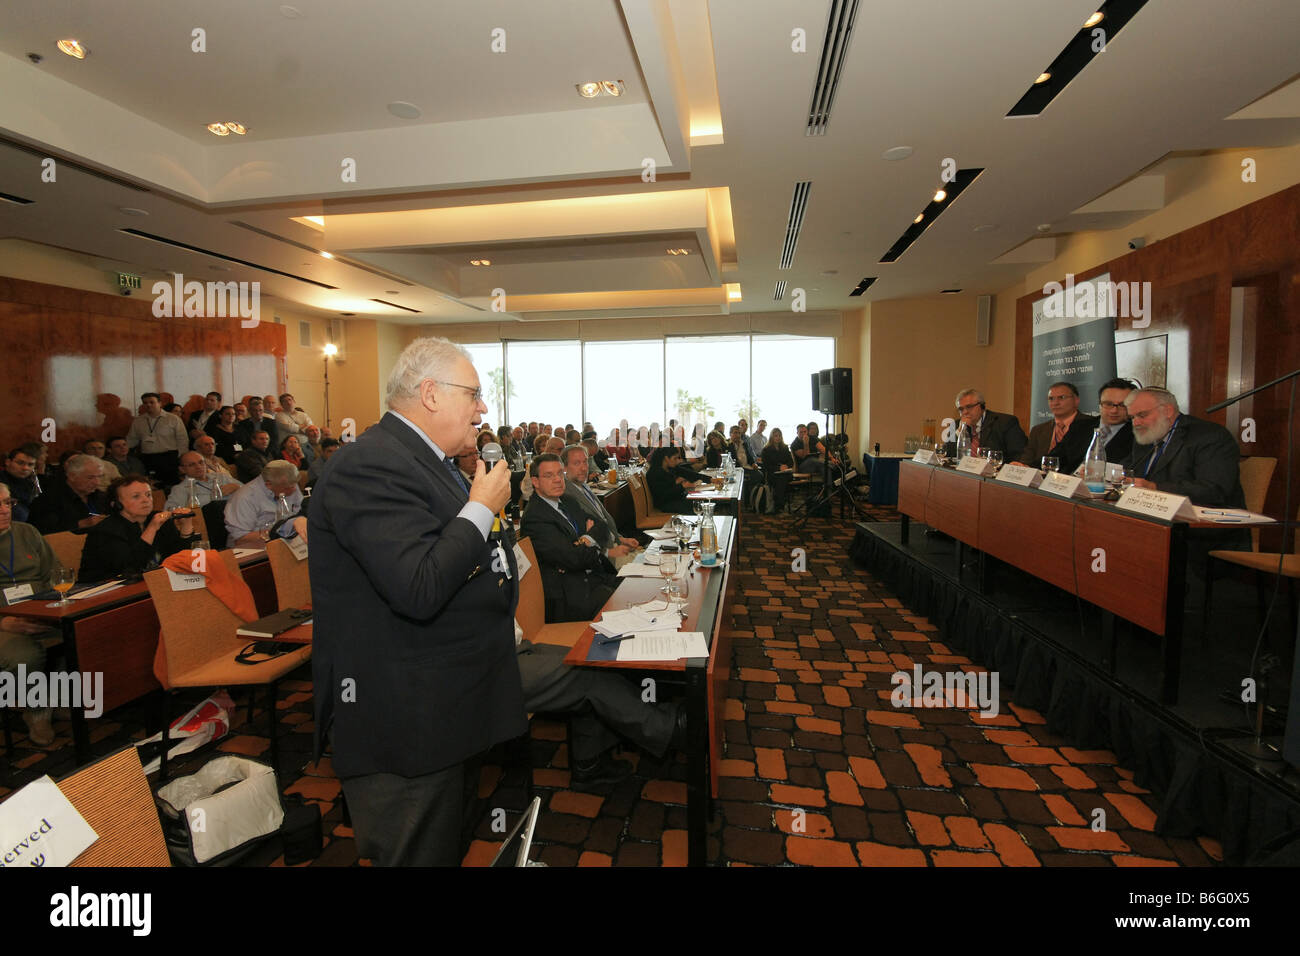 Renown strategist prof. Edward Luttwak asks a question during the Adelson Institute Dec. 2008 Counterinsurgency Stock Photo